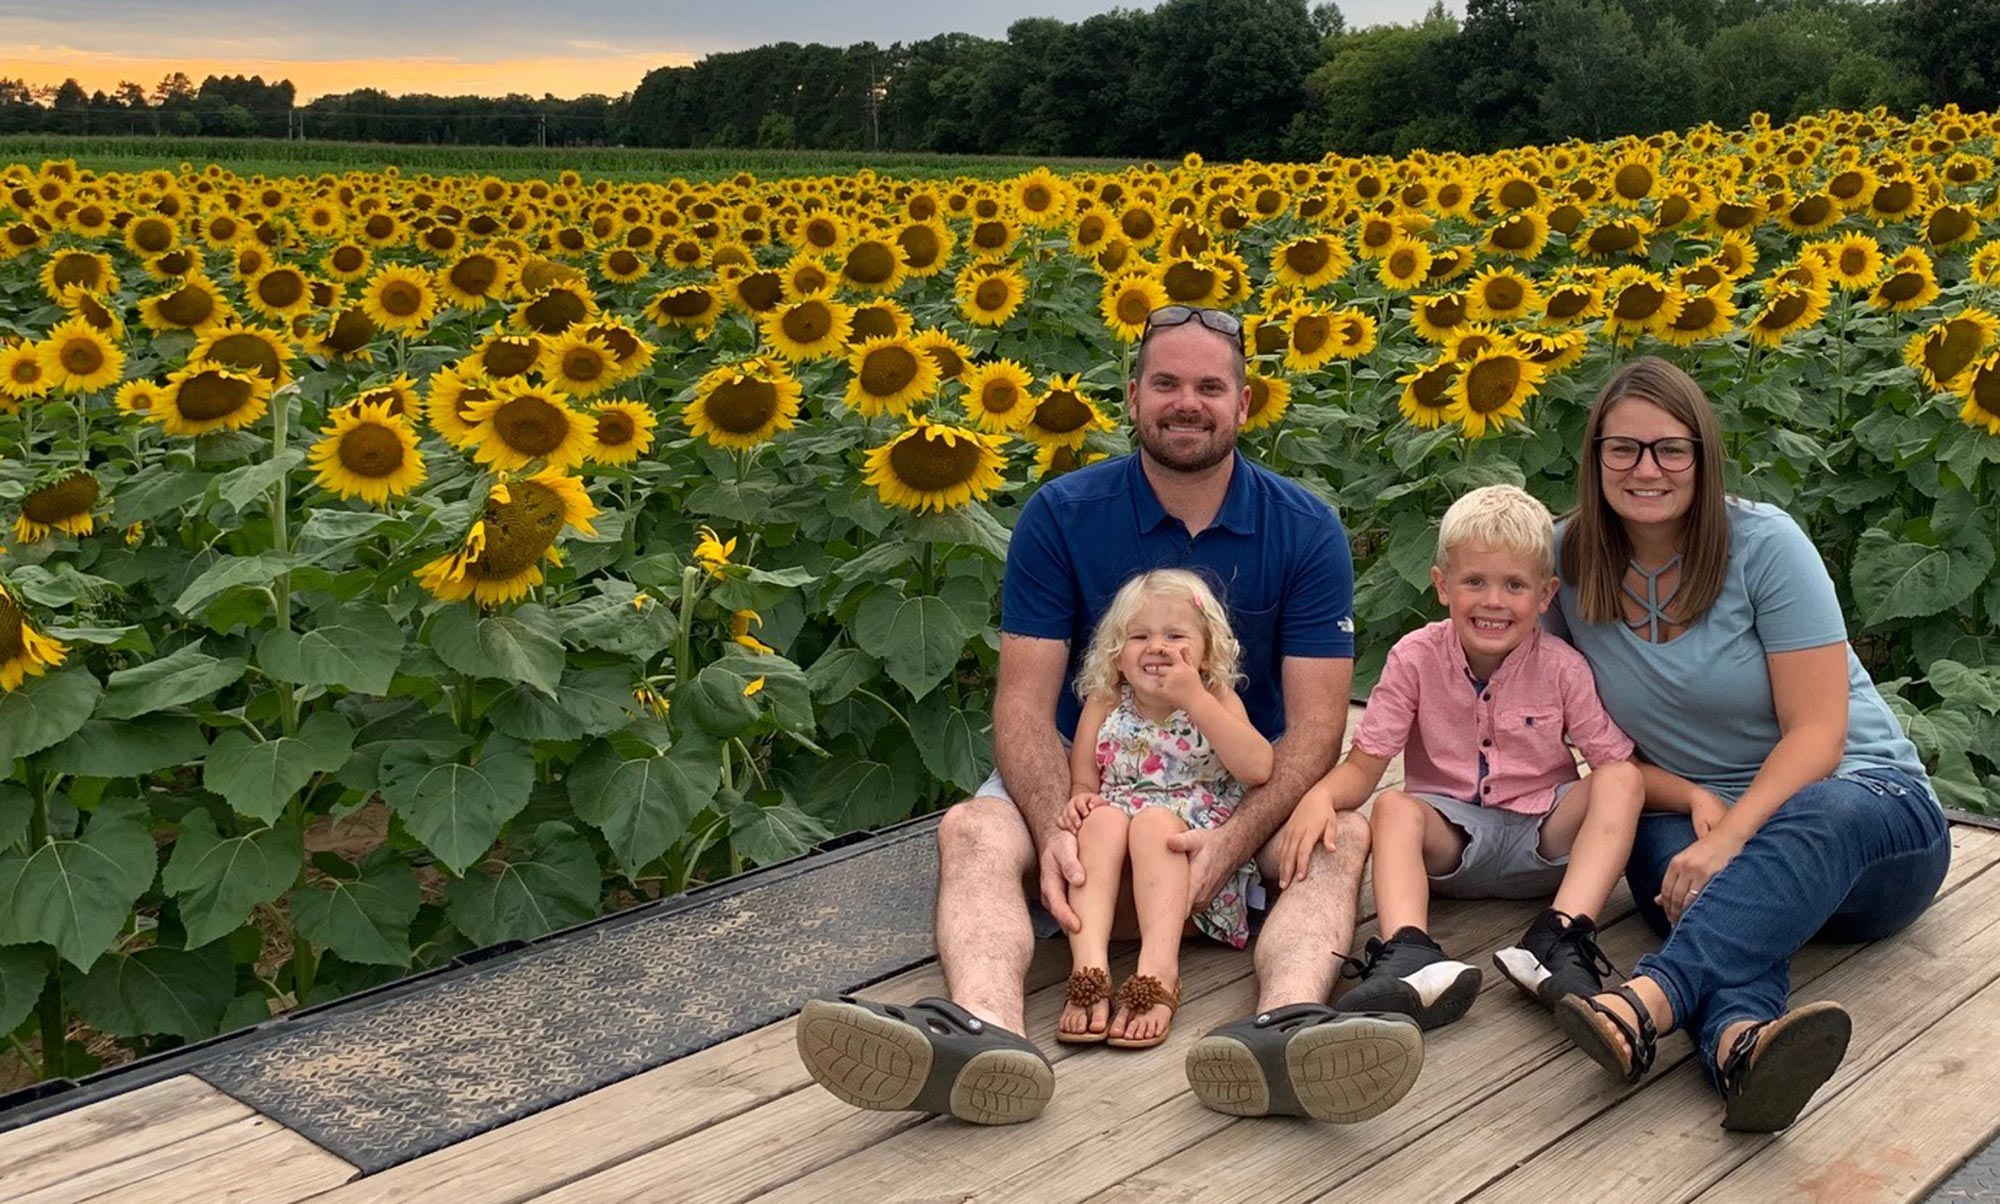 family in front of sunflowers